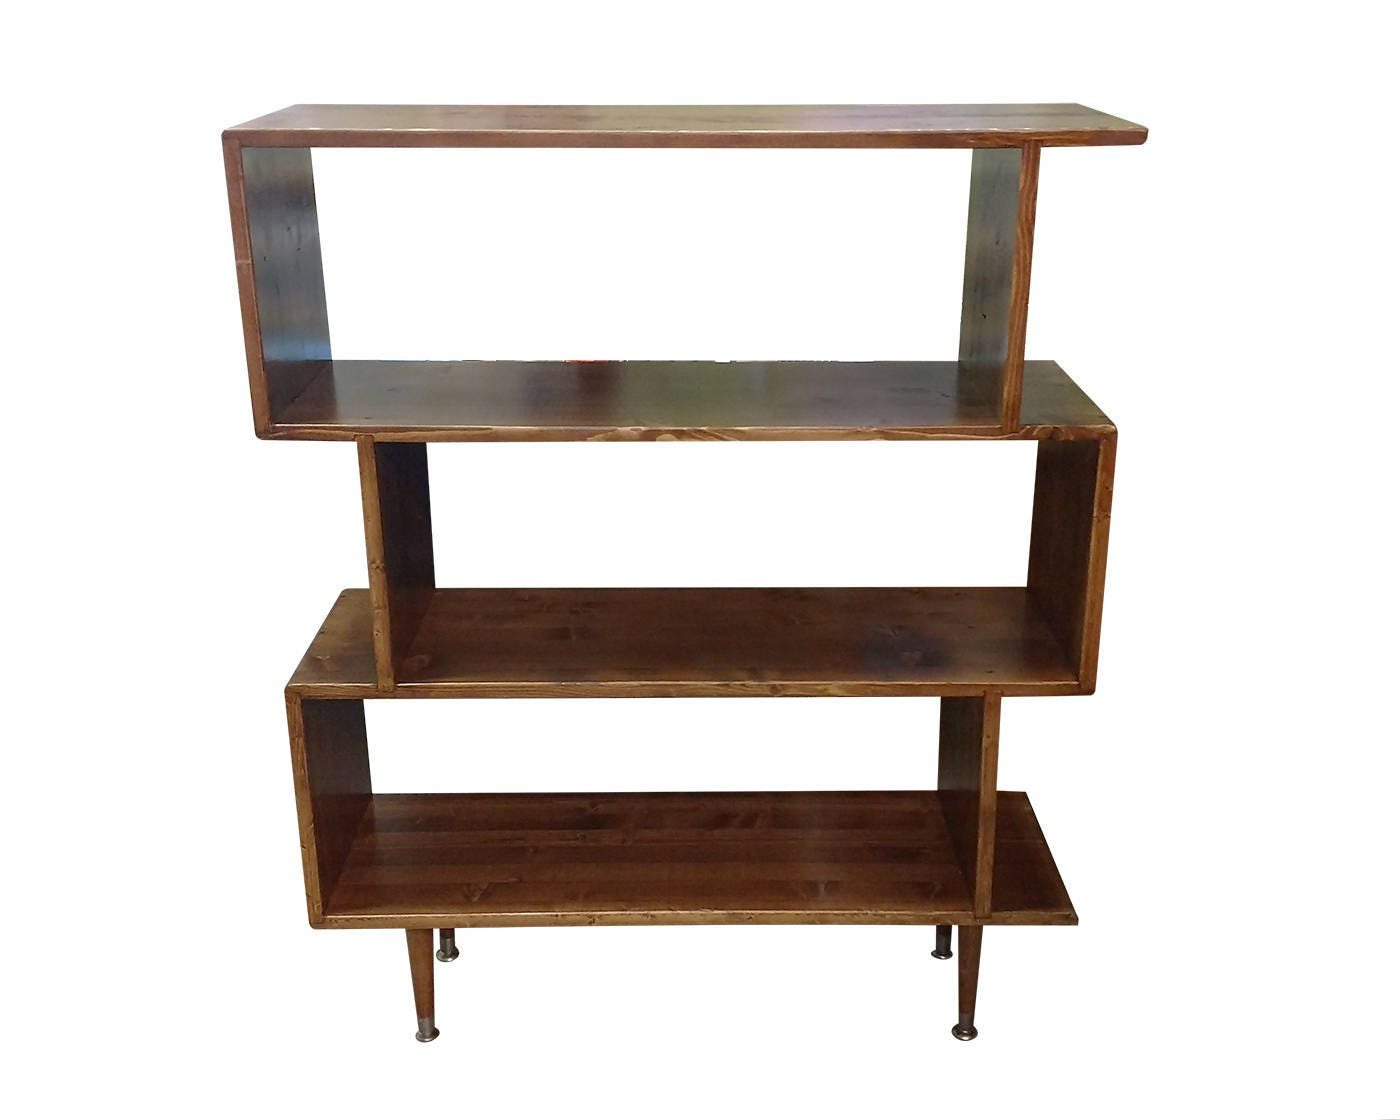 Design Zig Zag Bookshelf mid century inspired zigzag bookshelf made to order 120 days